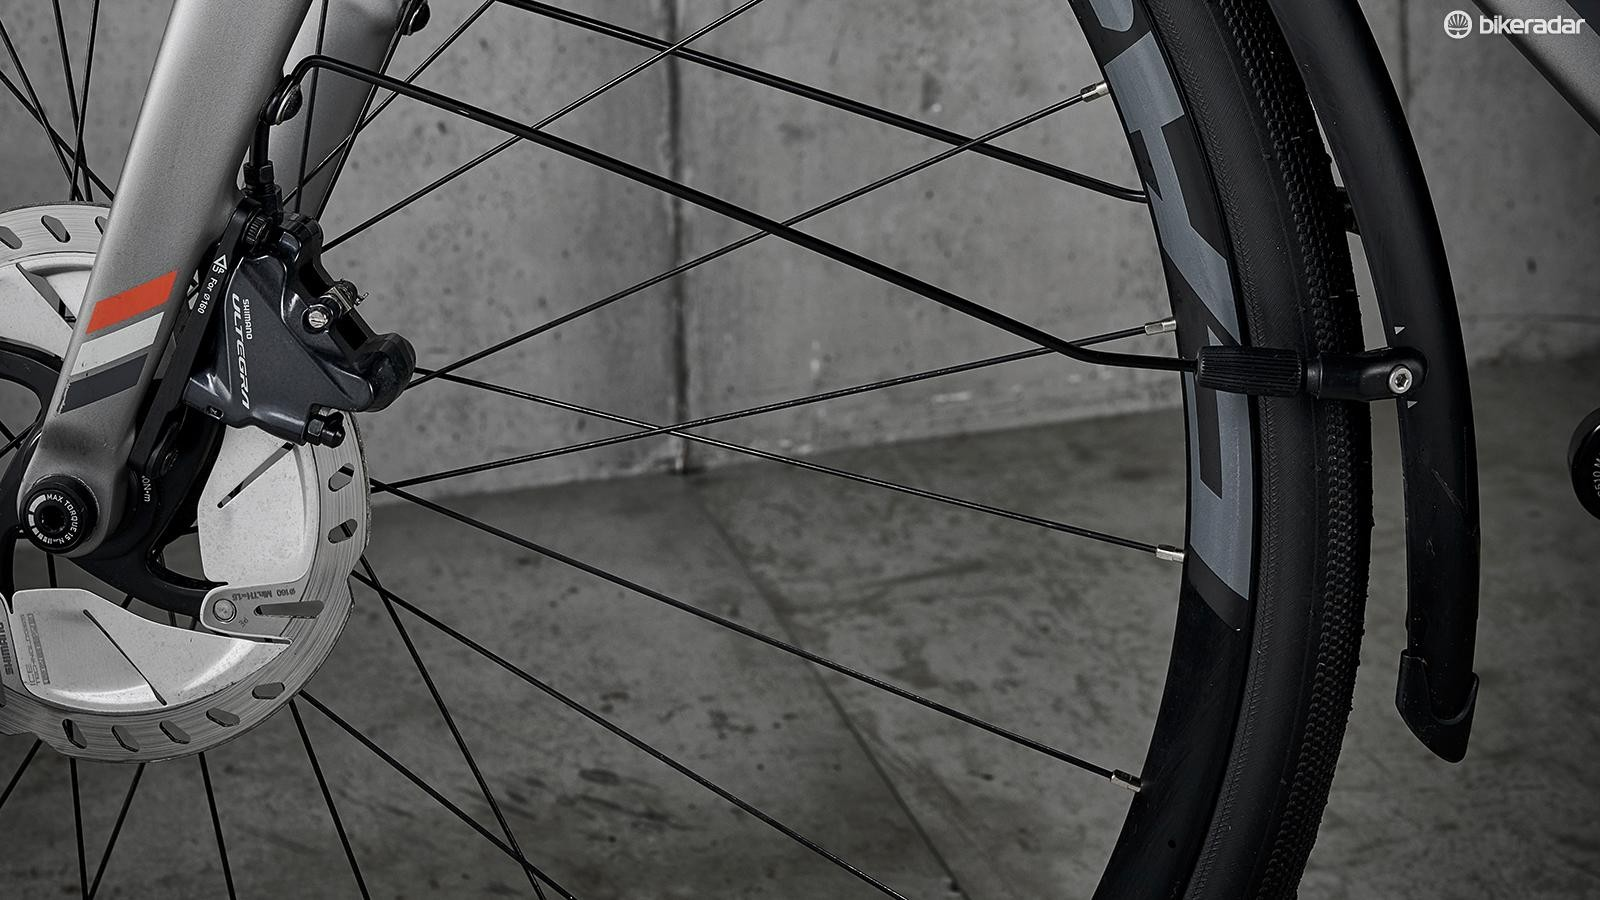 Hydraulic Shimano discs provide ample stopping power